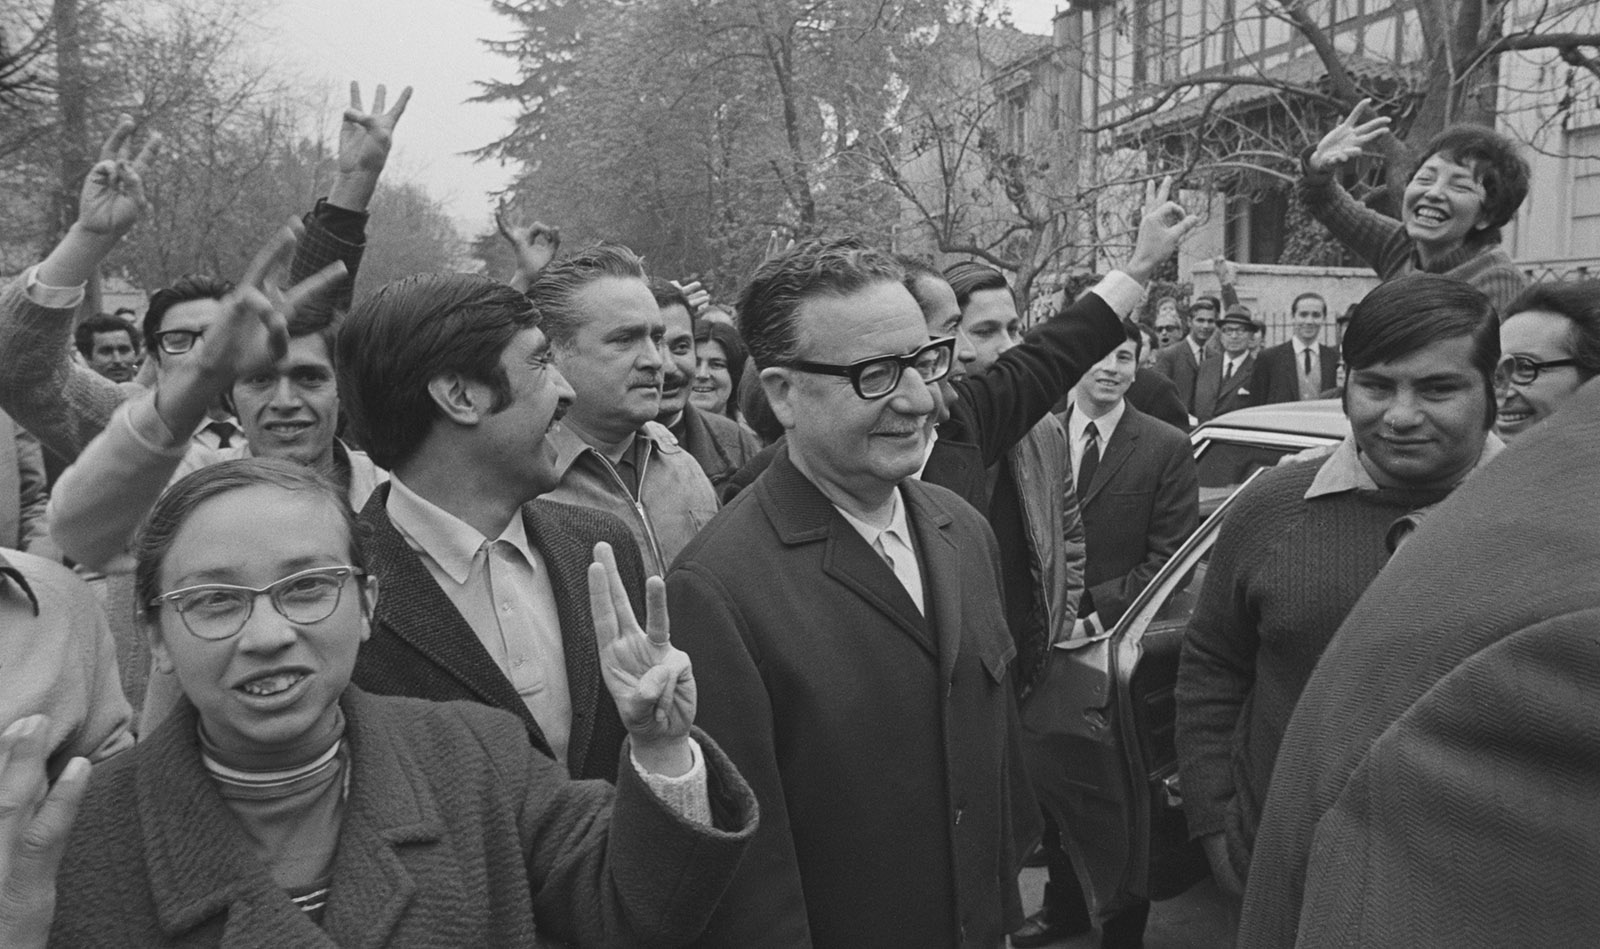 Salvador Allende with supporters, 1970